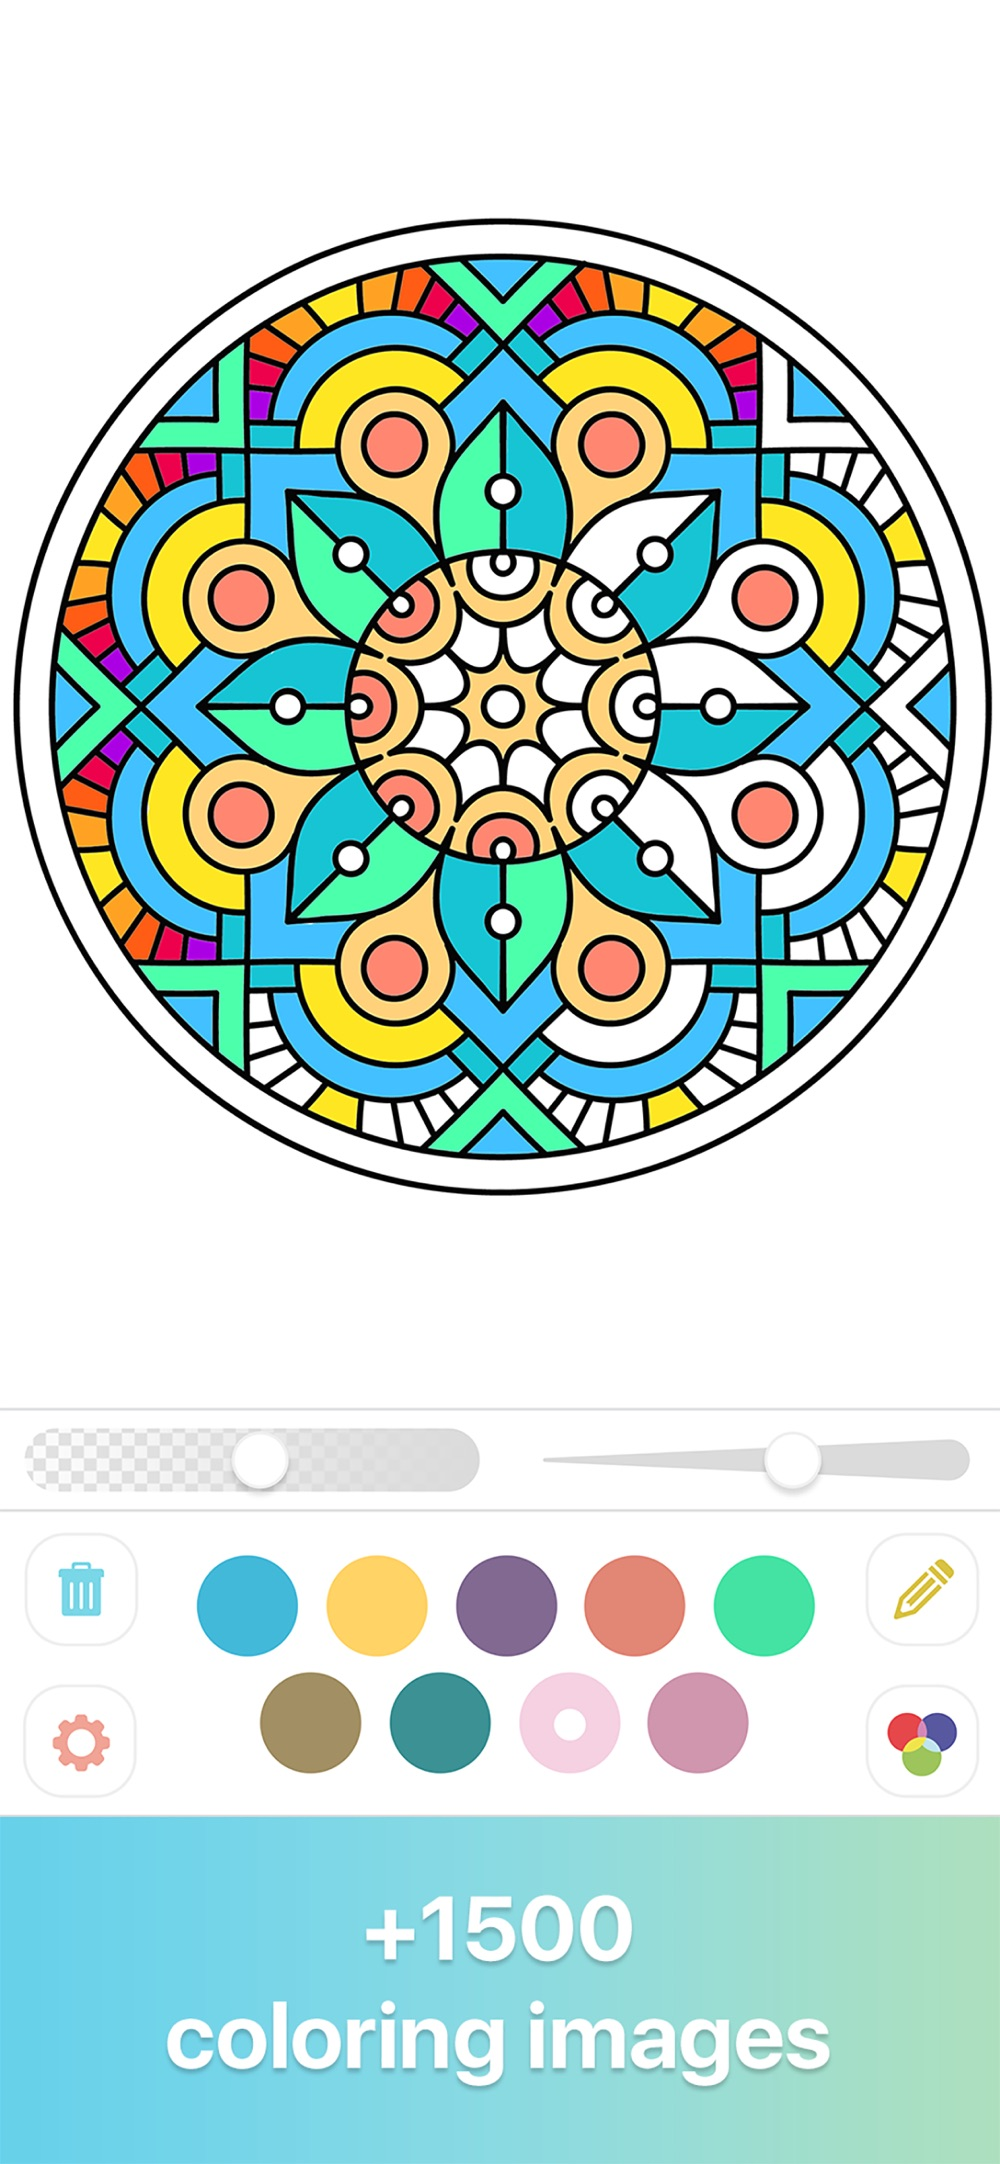 Coloring Book for Adults ∙ Cheat Codes